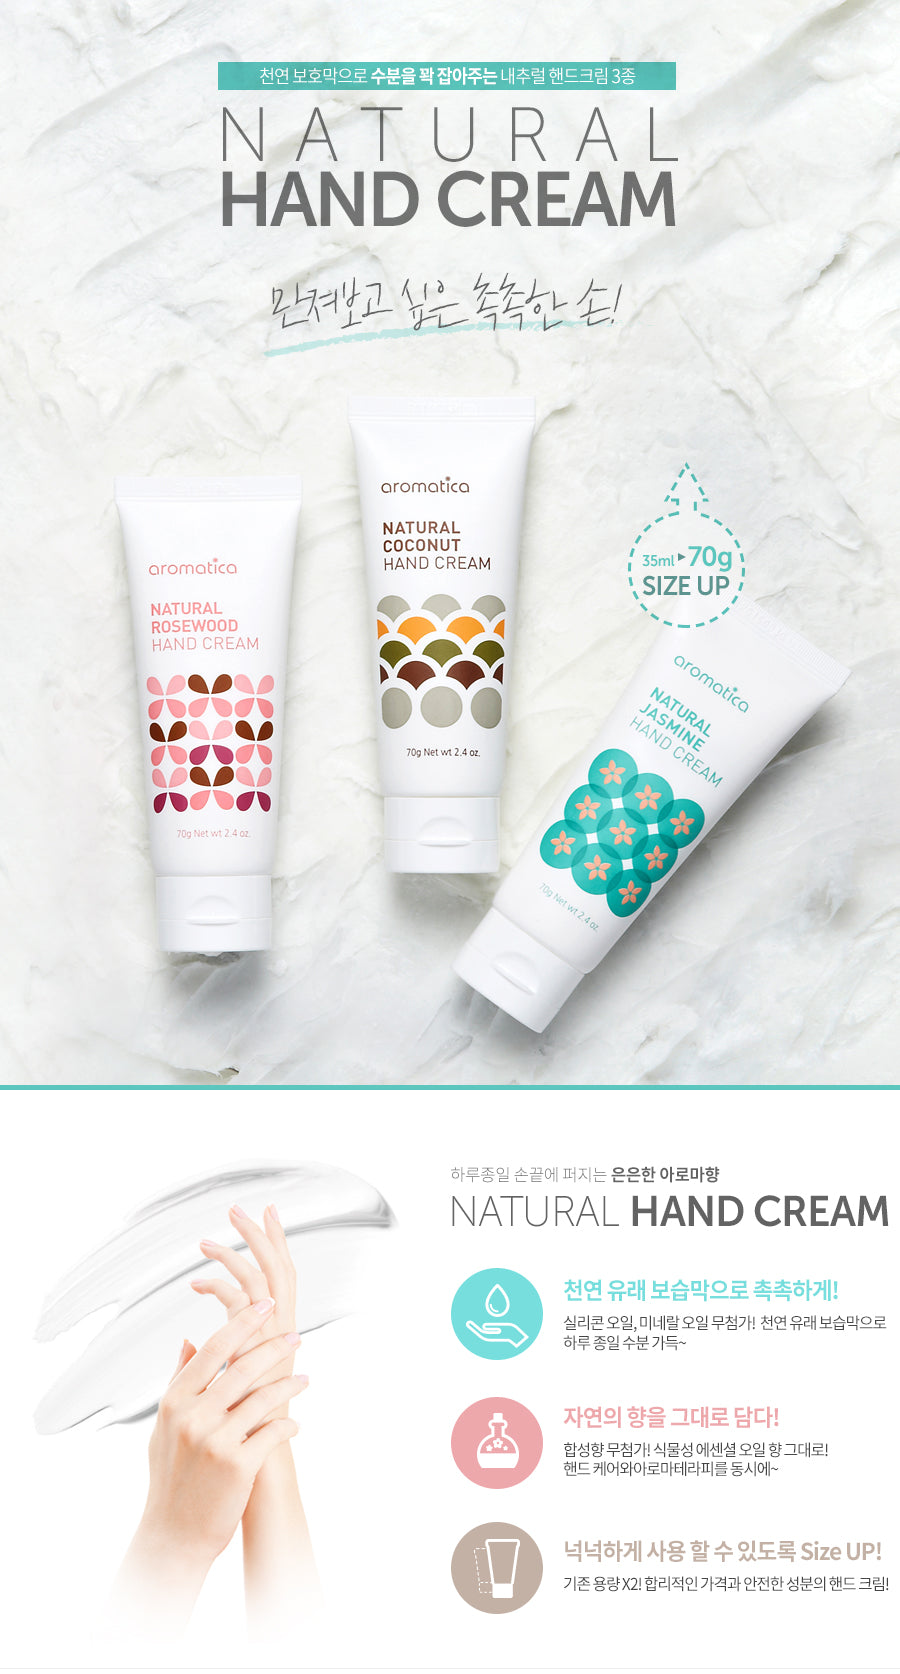 Aromatica - Natural Rosewood Hand Cream